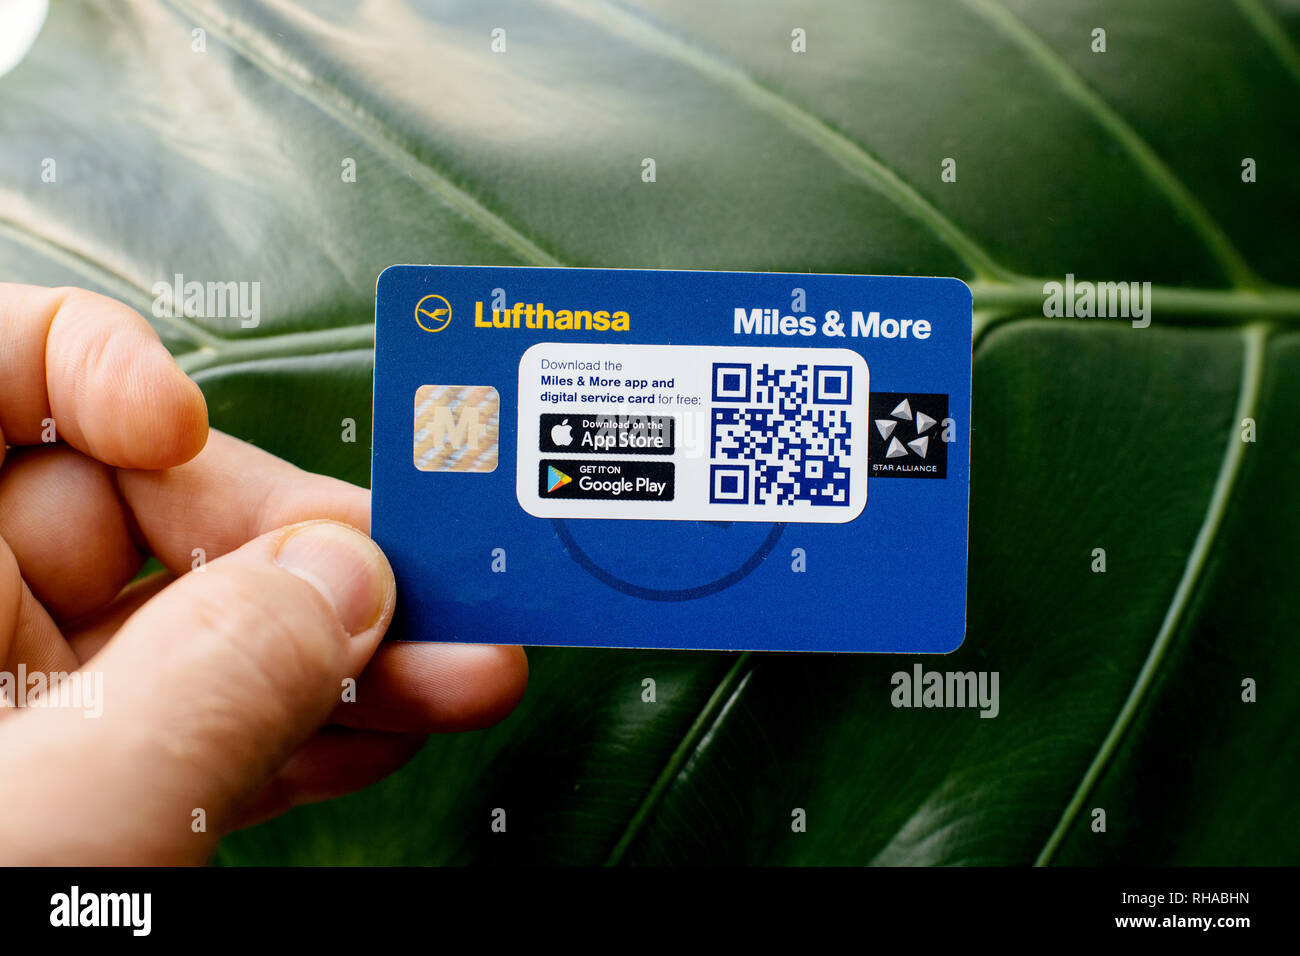 Miles And More Digital Service Card Frankfurt Germany Dec 18 2018 Man Holding Against Green Leaf